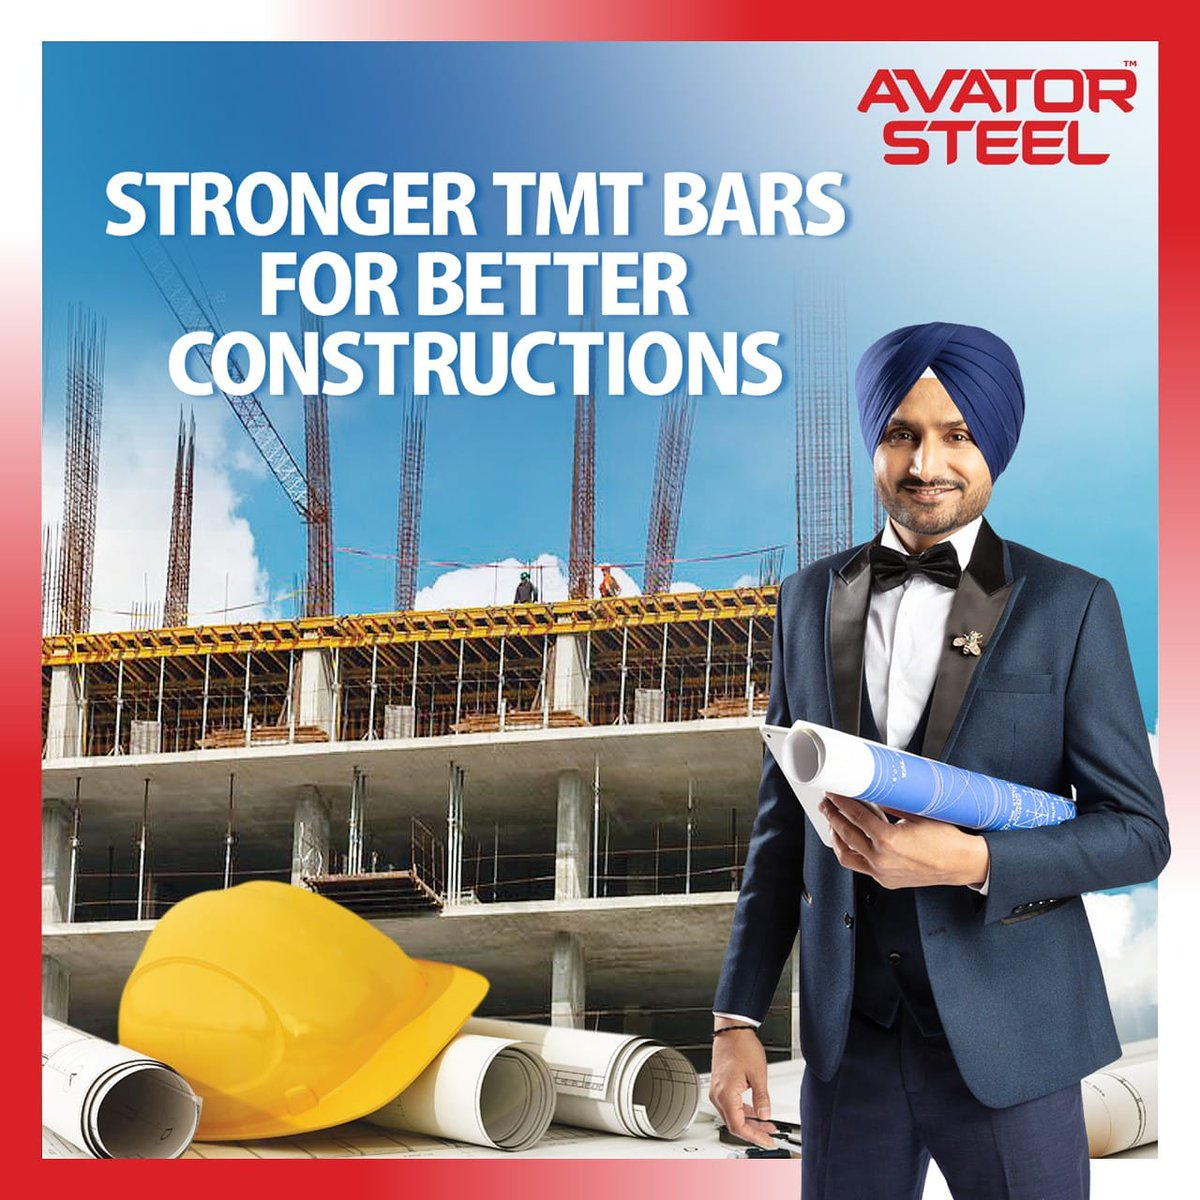 @AvatorSteel tmt bars are miles ahead of the competition. Giving your home the ultimate protection from fire or rust, #AvatorSteel ensures that your home stands strong for generations.   #AvatorSteel #HarbhajanSingh   @harbhajan_singh